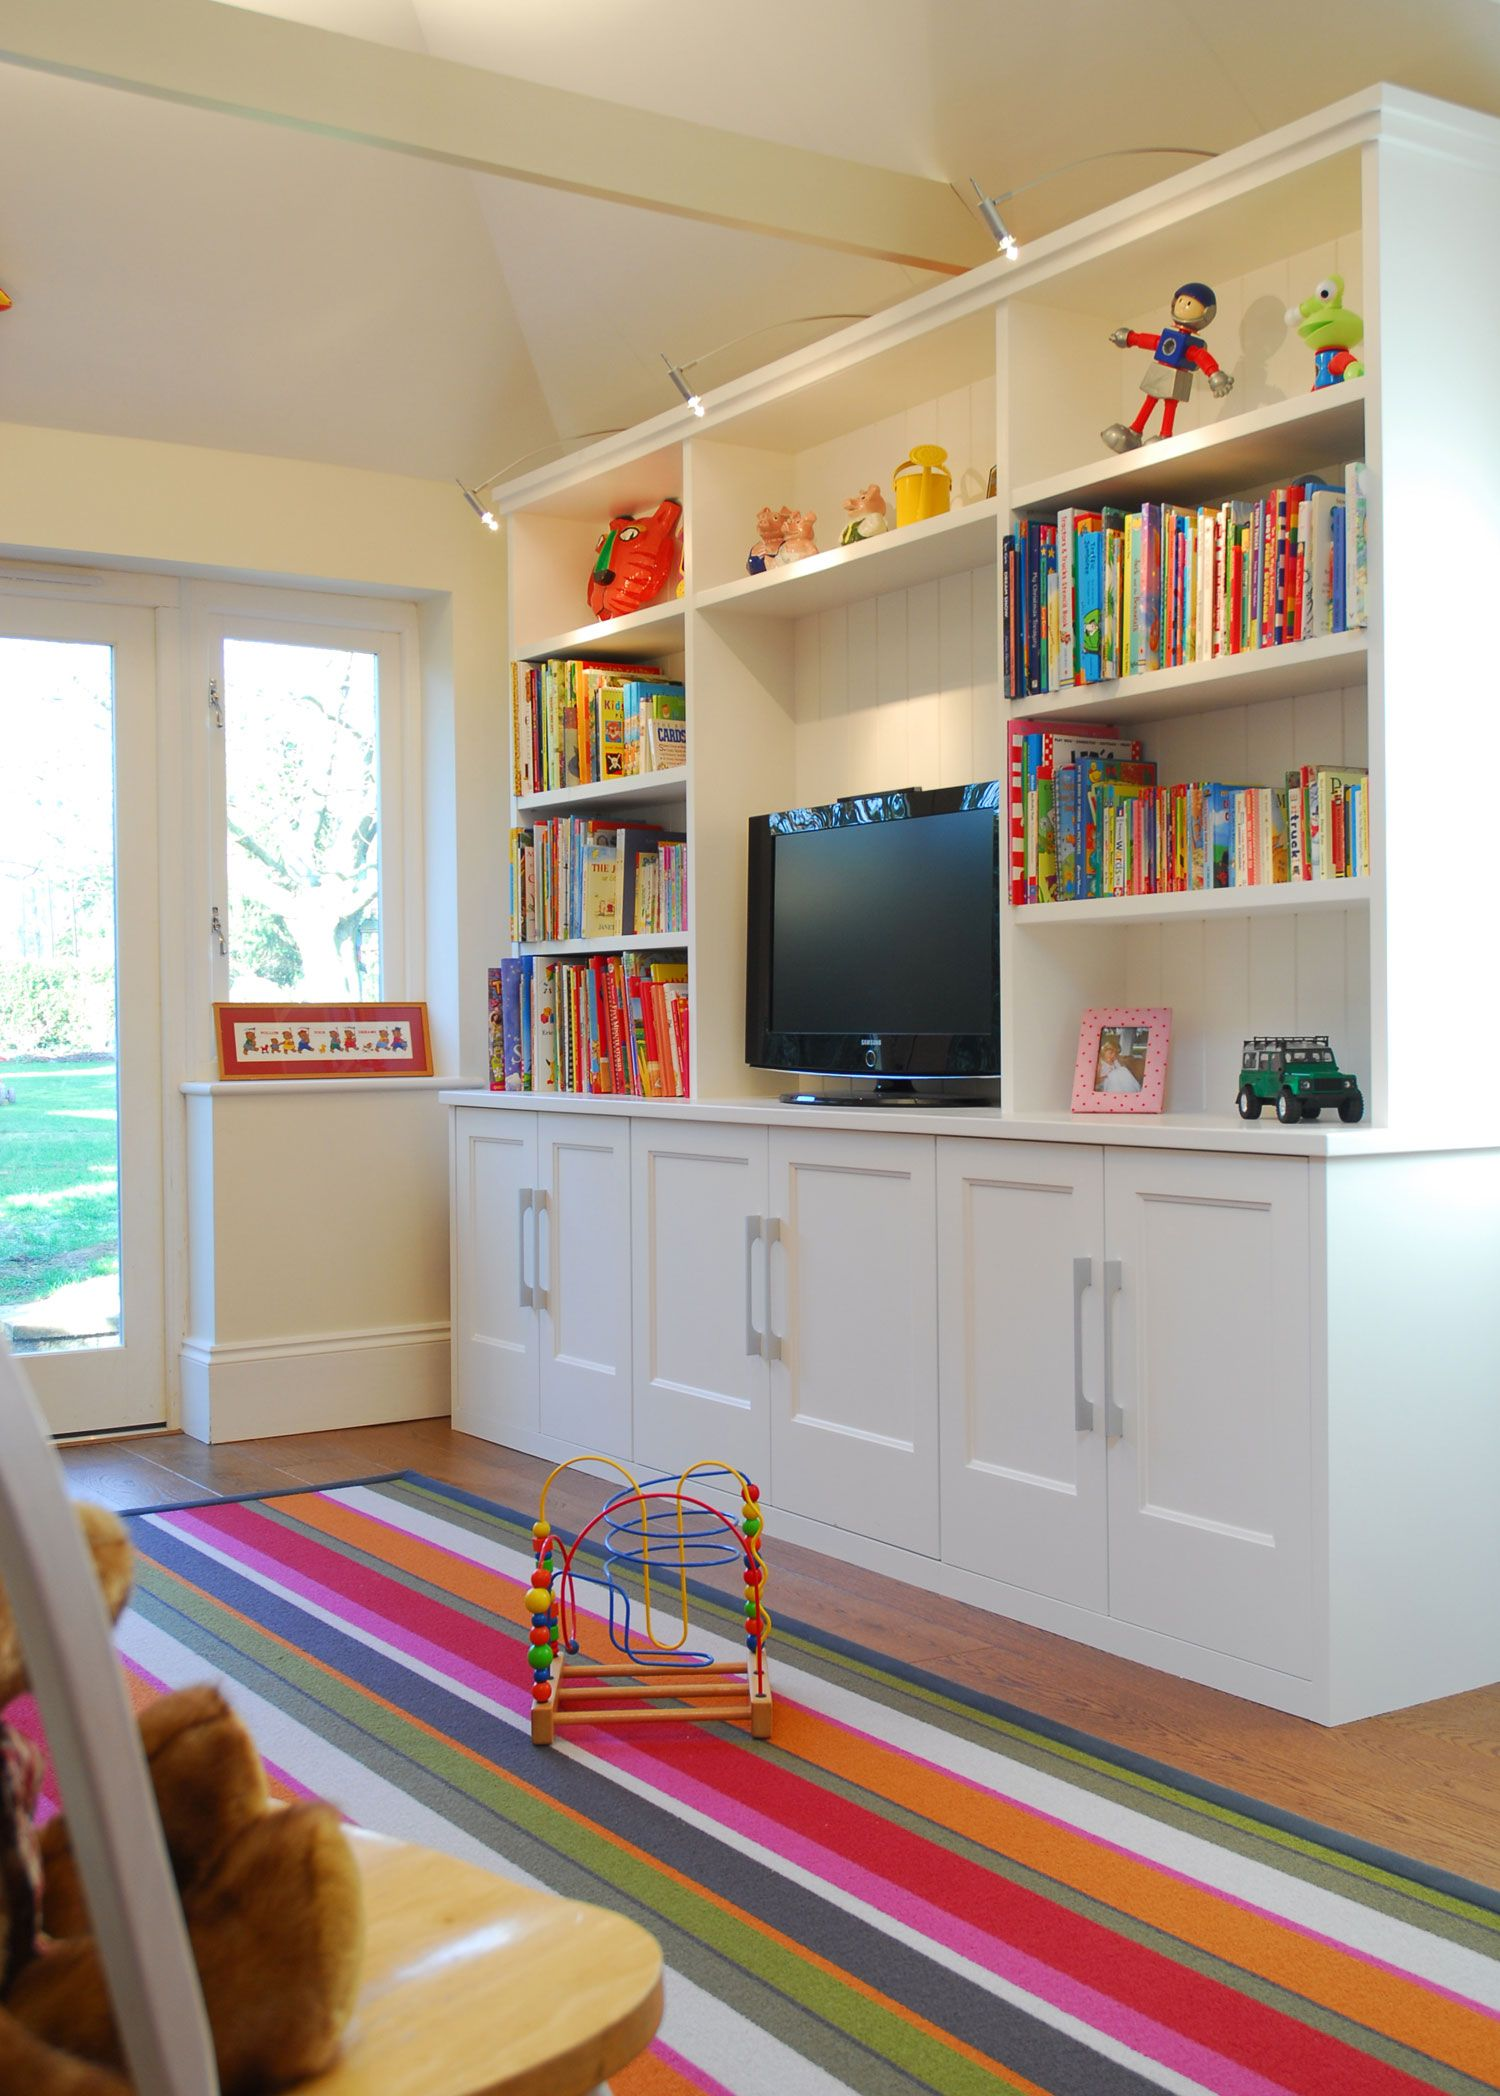 Childrens loft bedroom ideas  Functional storage for a loft space  Kids Play Room  Pinterest